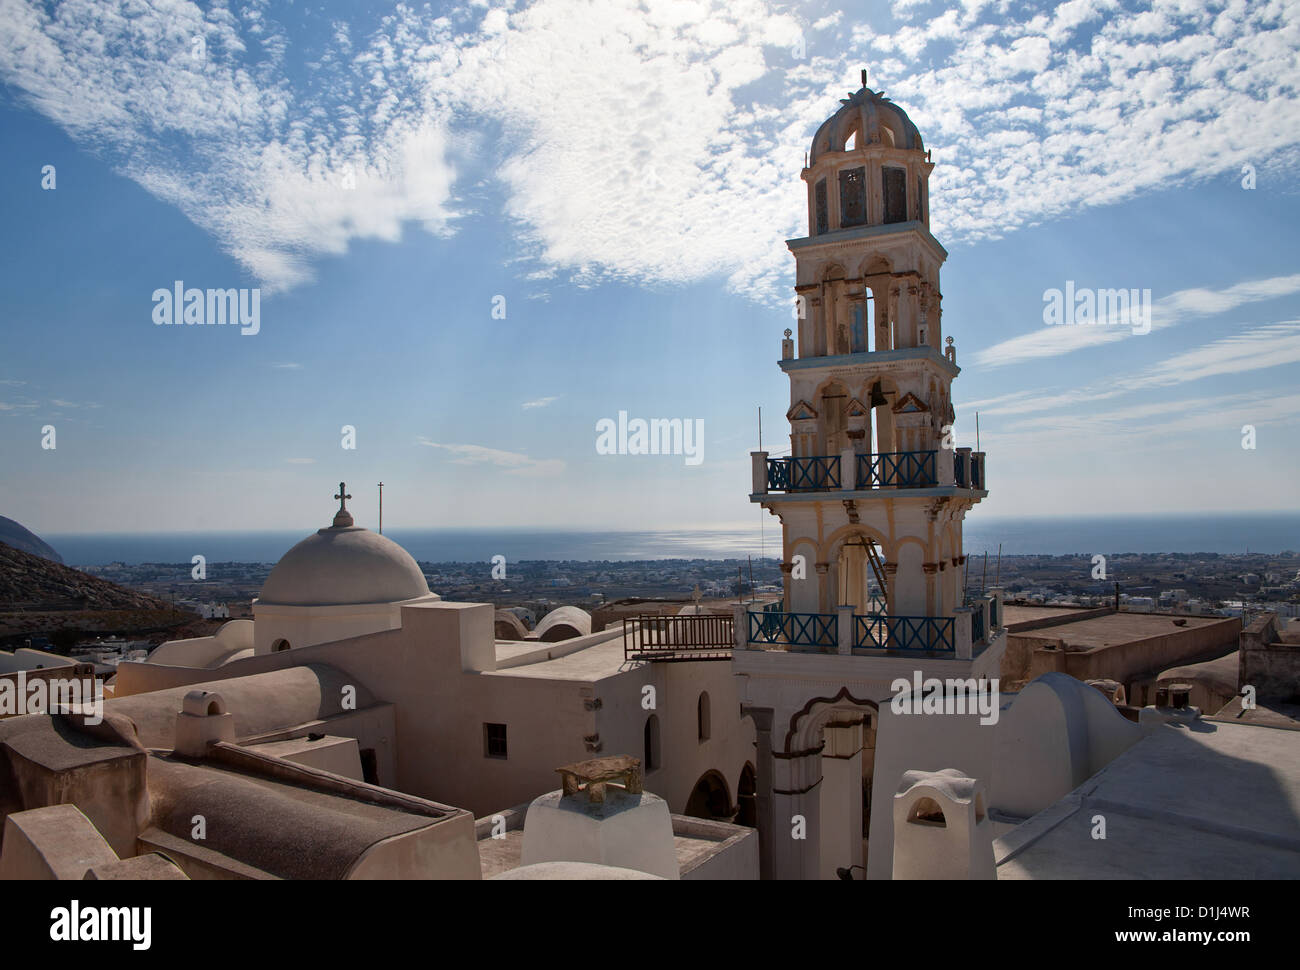 Tower of the Church on background blue sky - Stock Image